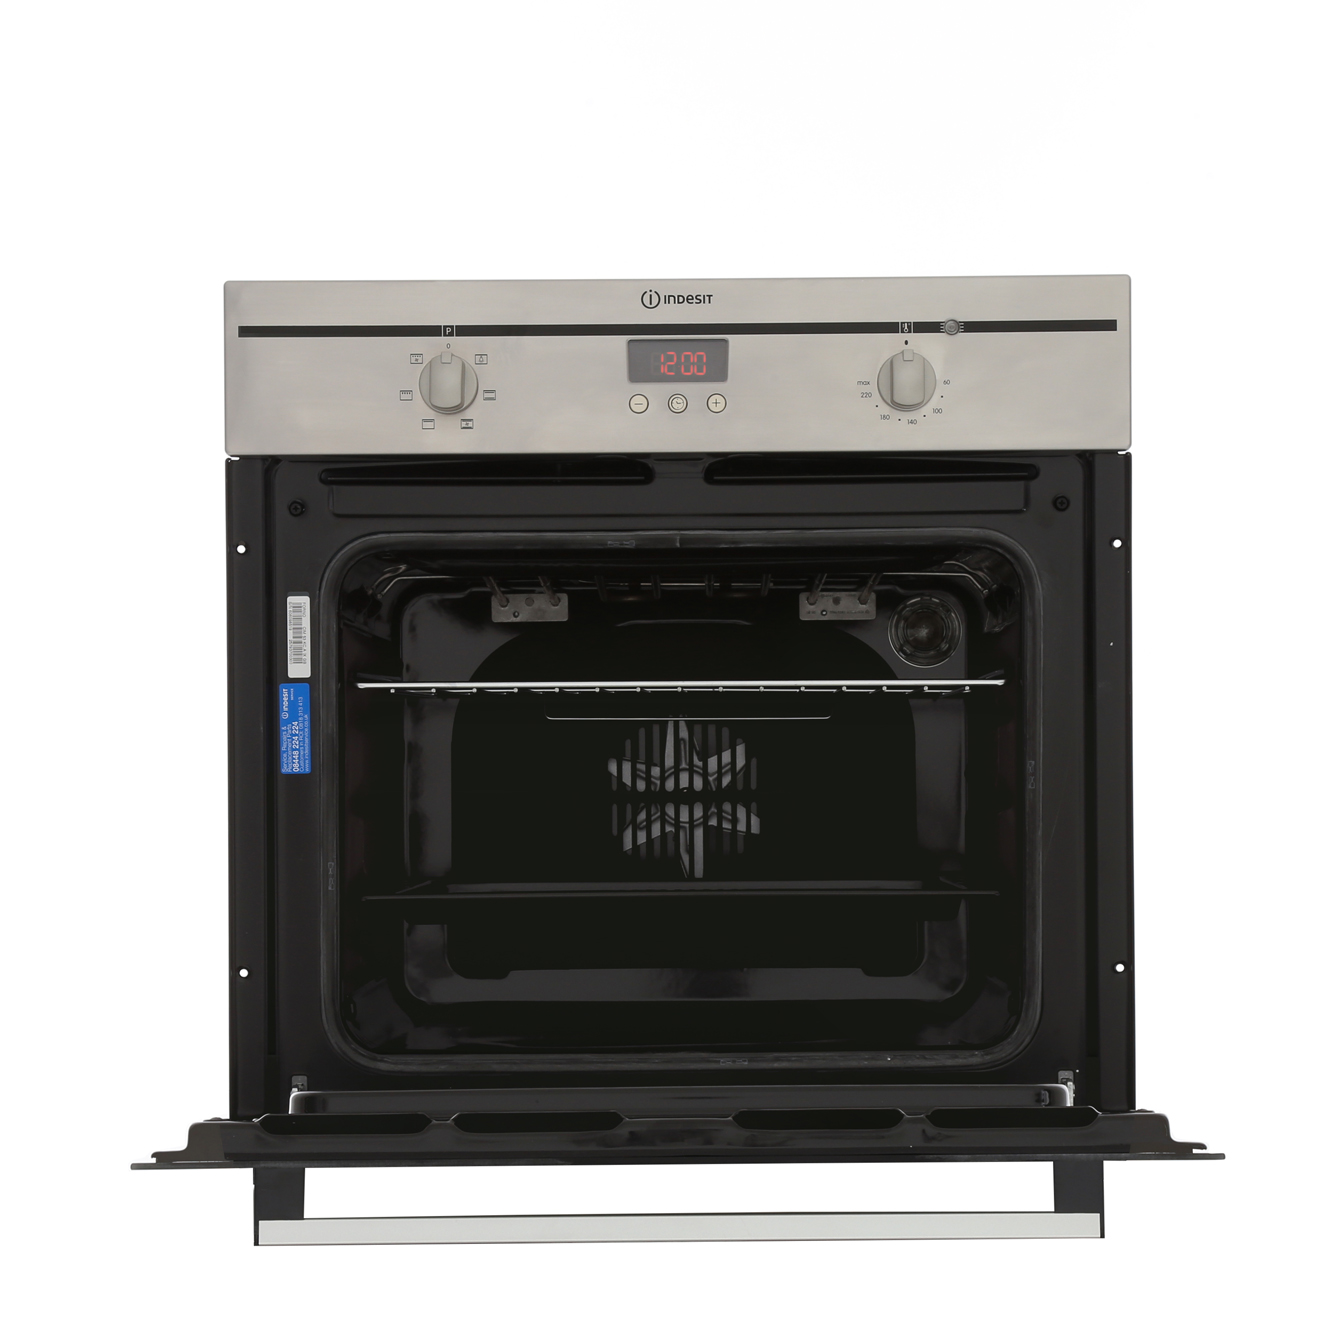 built in ovens january 2017 rh builtinovenstemodori blogspot com Belling Appliances B160 Belling Oven